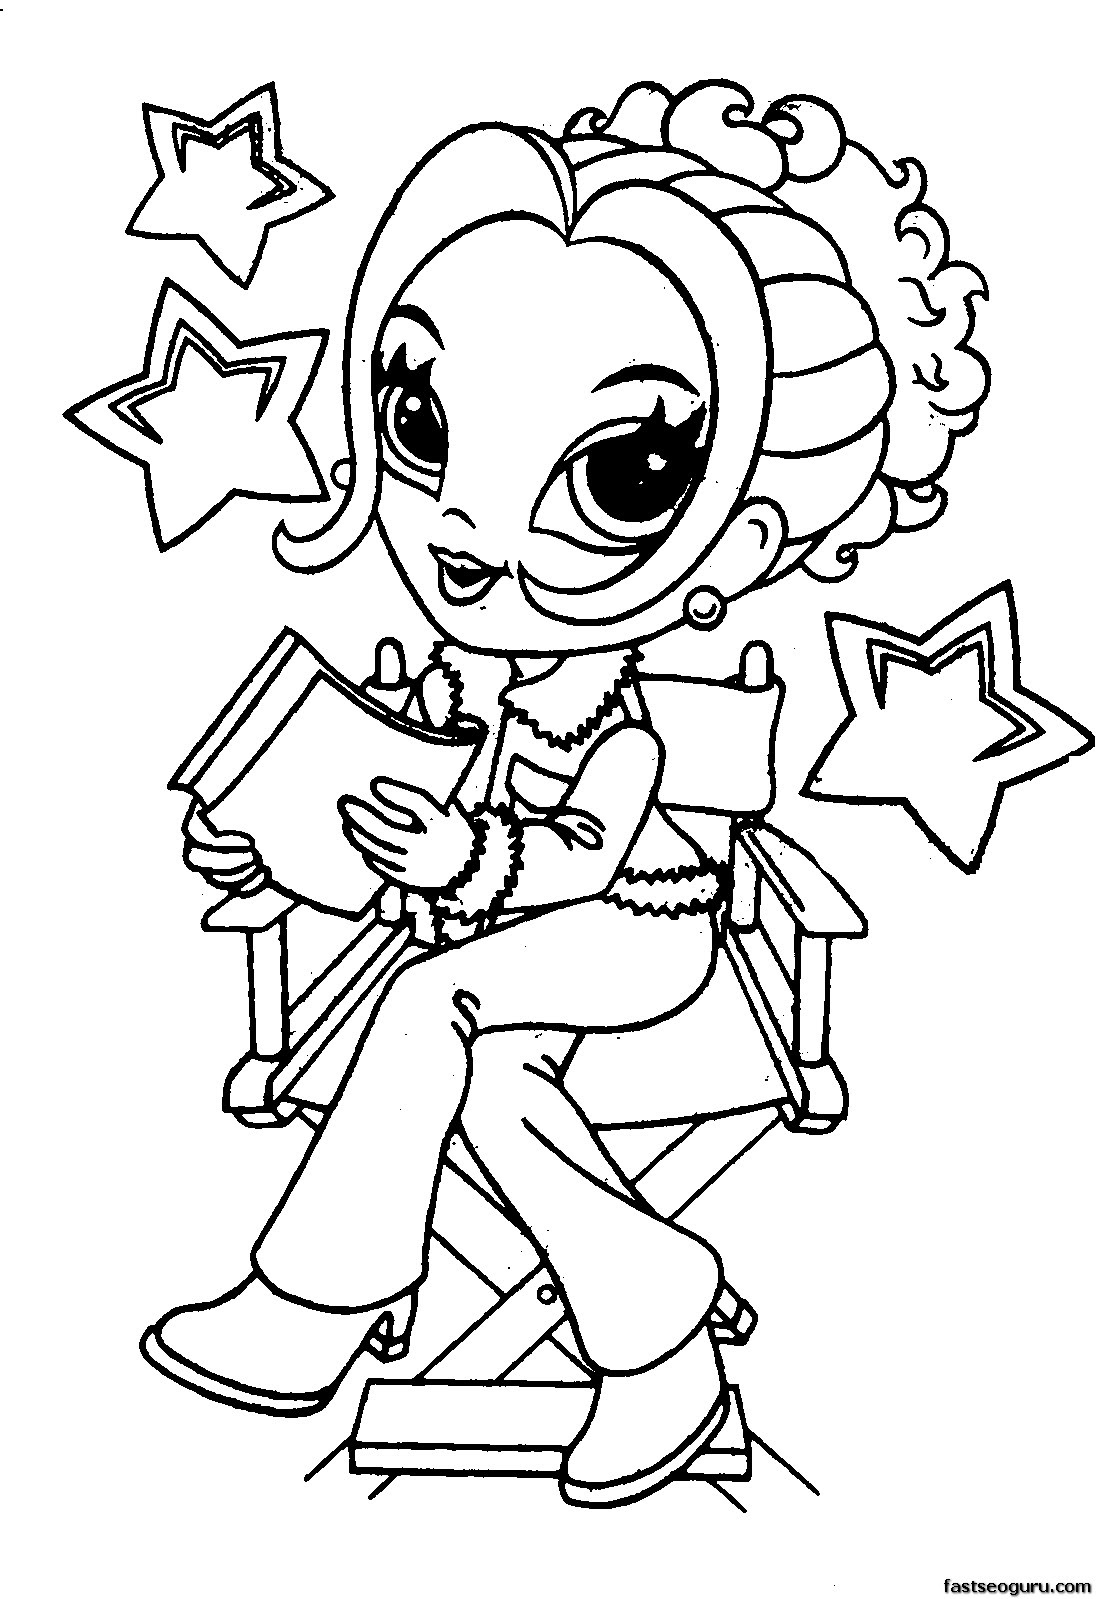 Printable Lisa Frank Coloring Pages for Girls  Printable